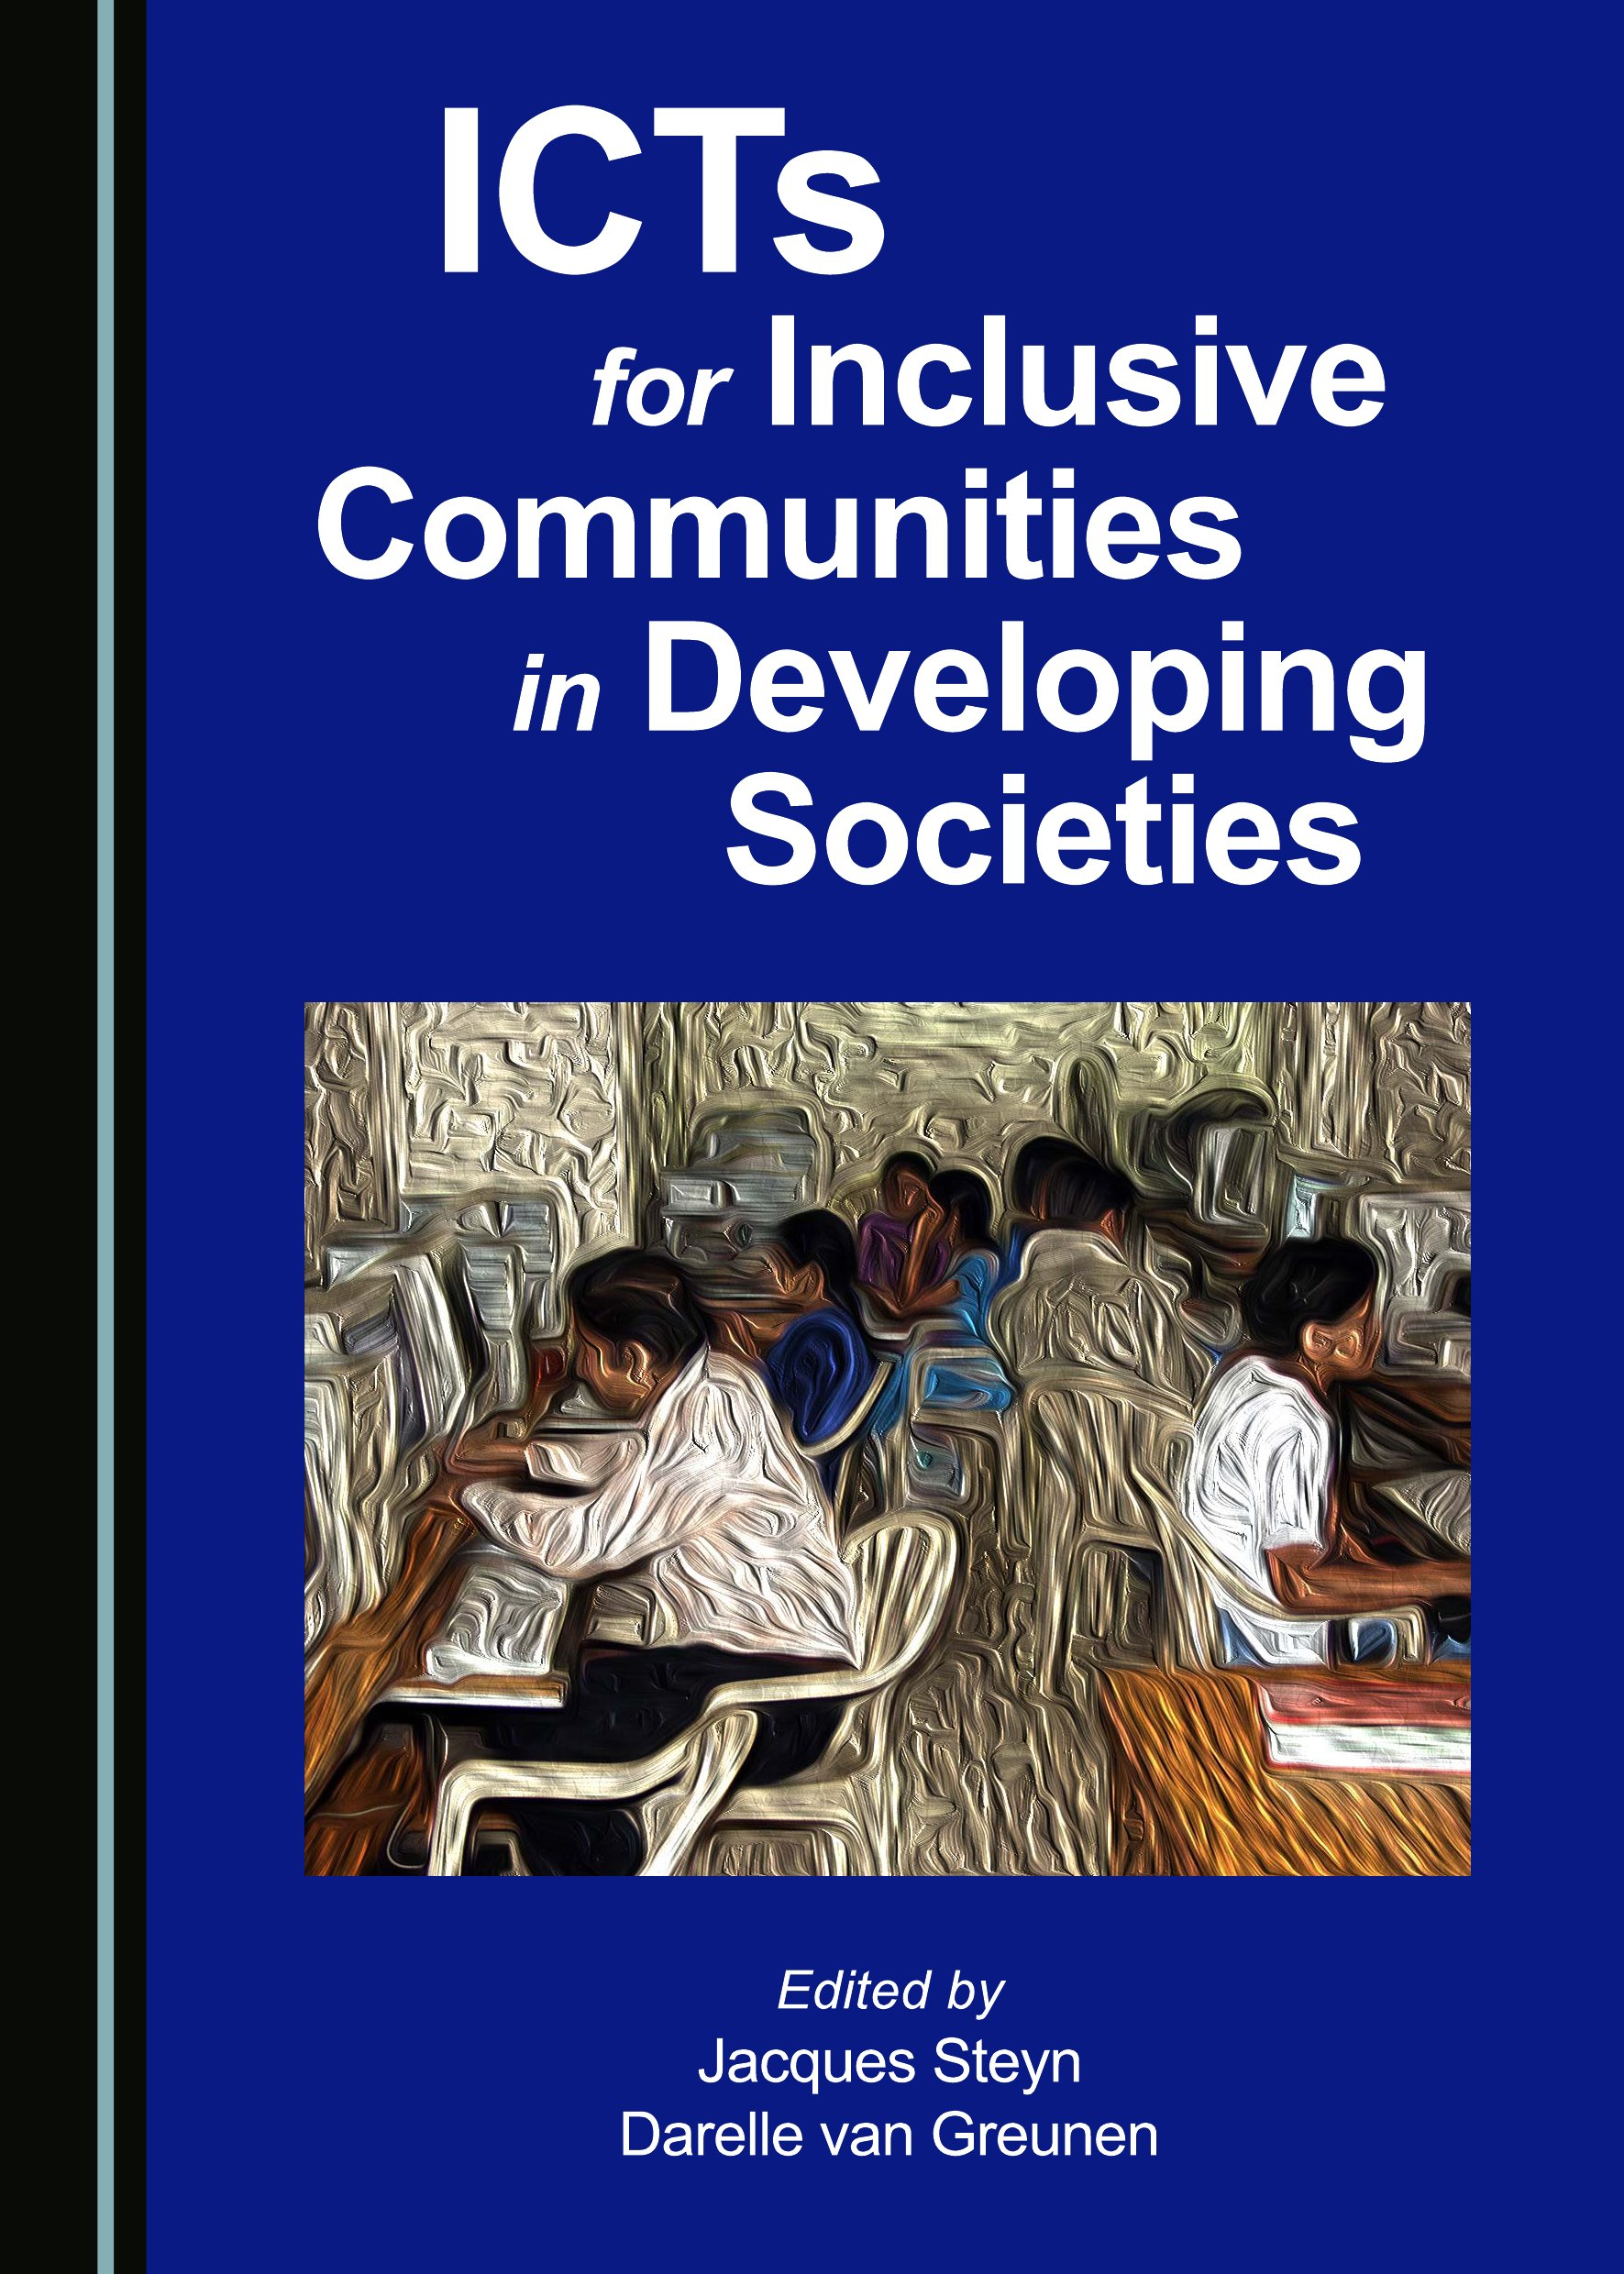 ICTs for Inclusive Communities in Developing Societies